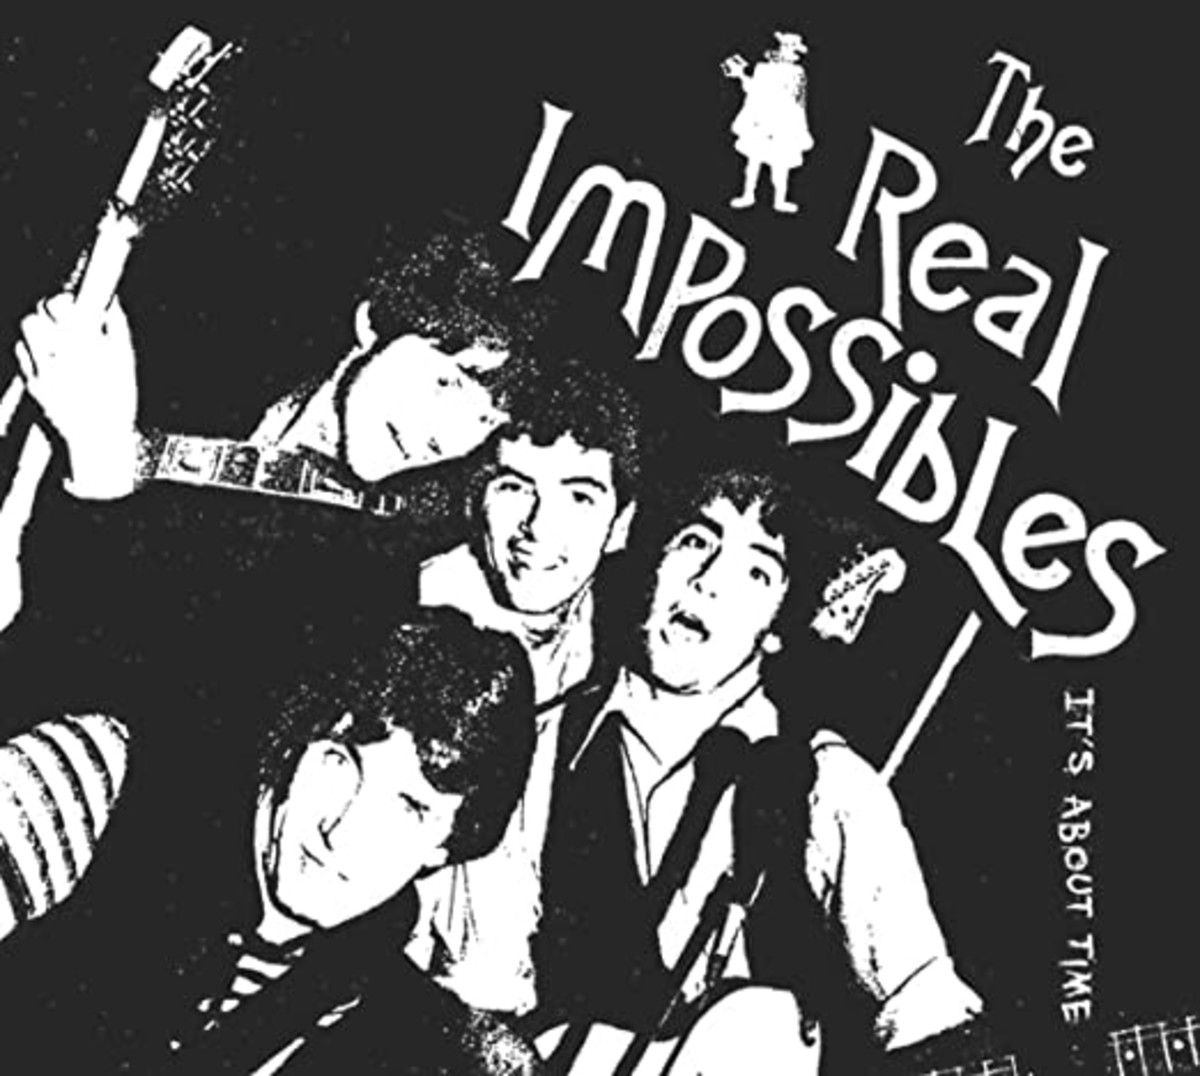 THE REAL IMPOSSIBLES